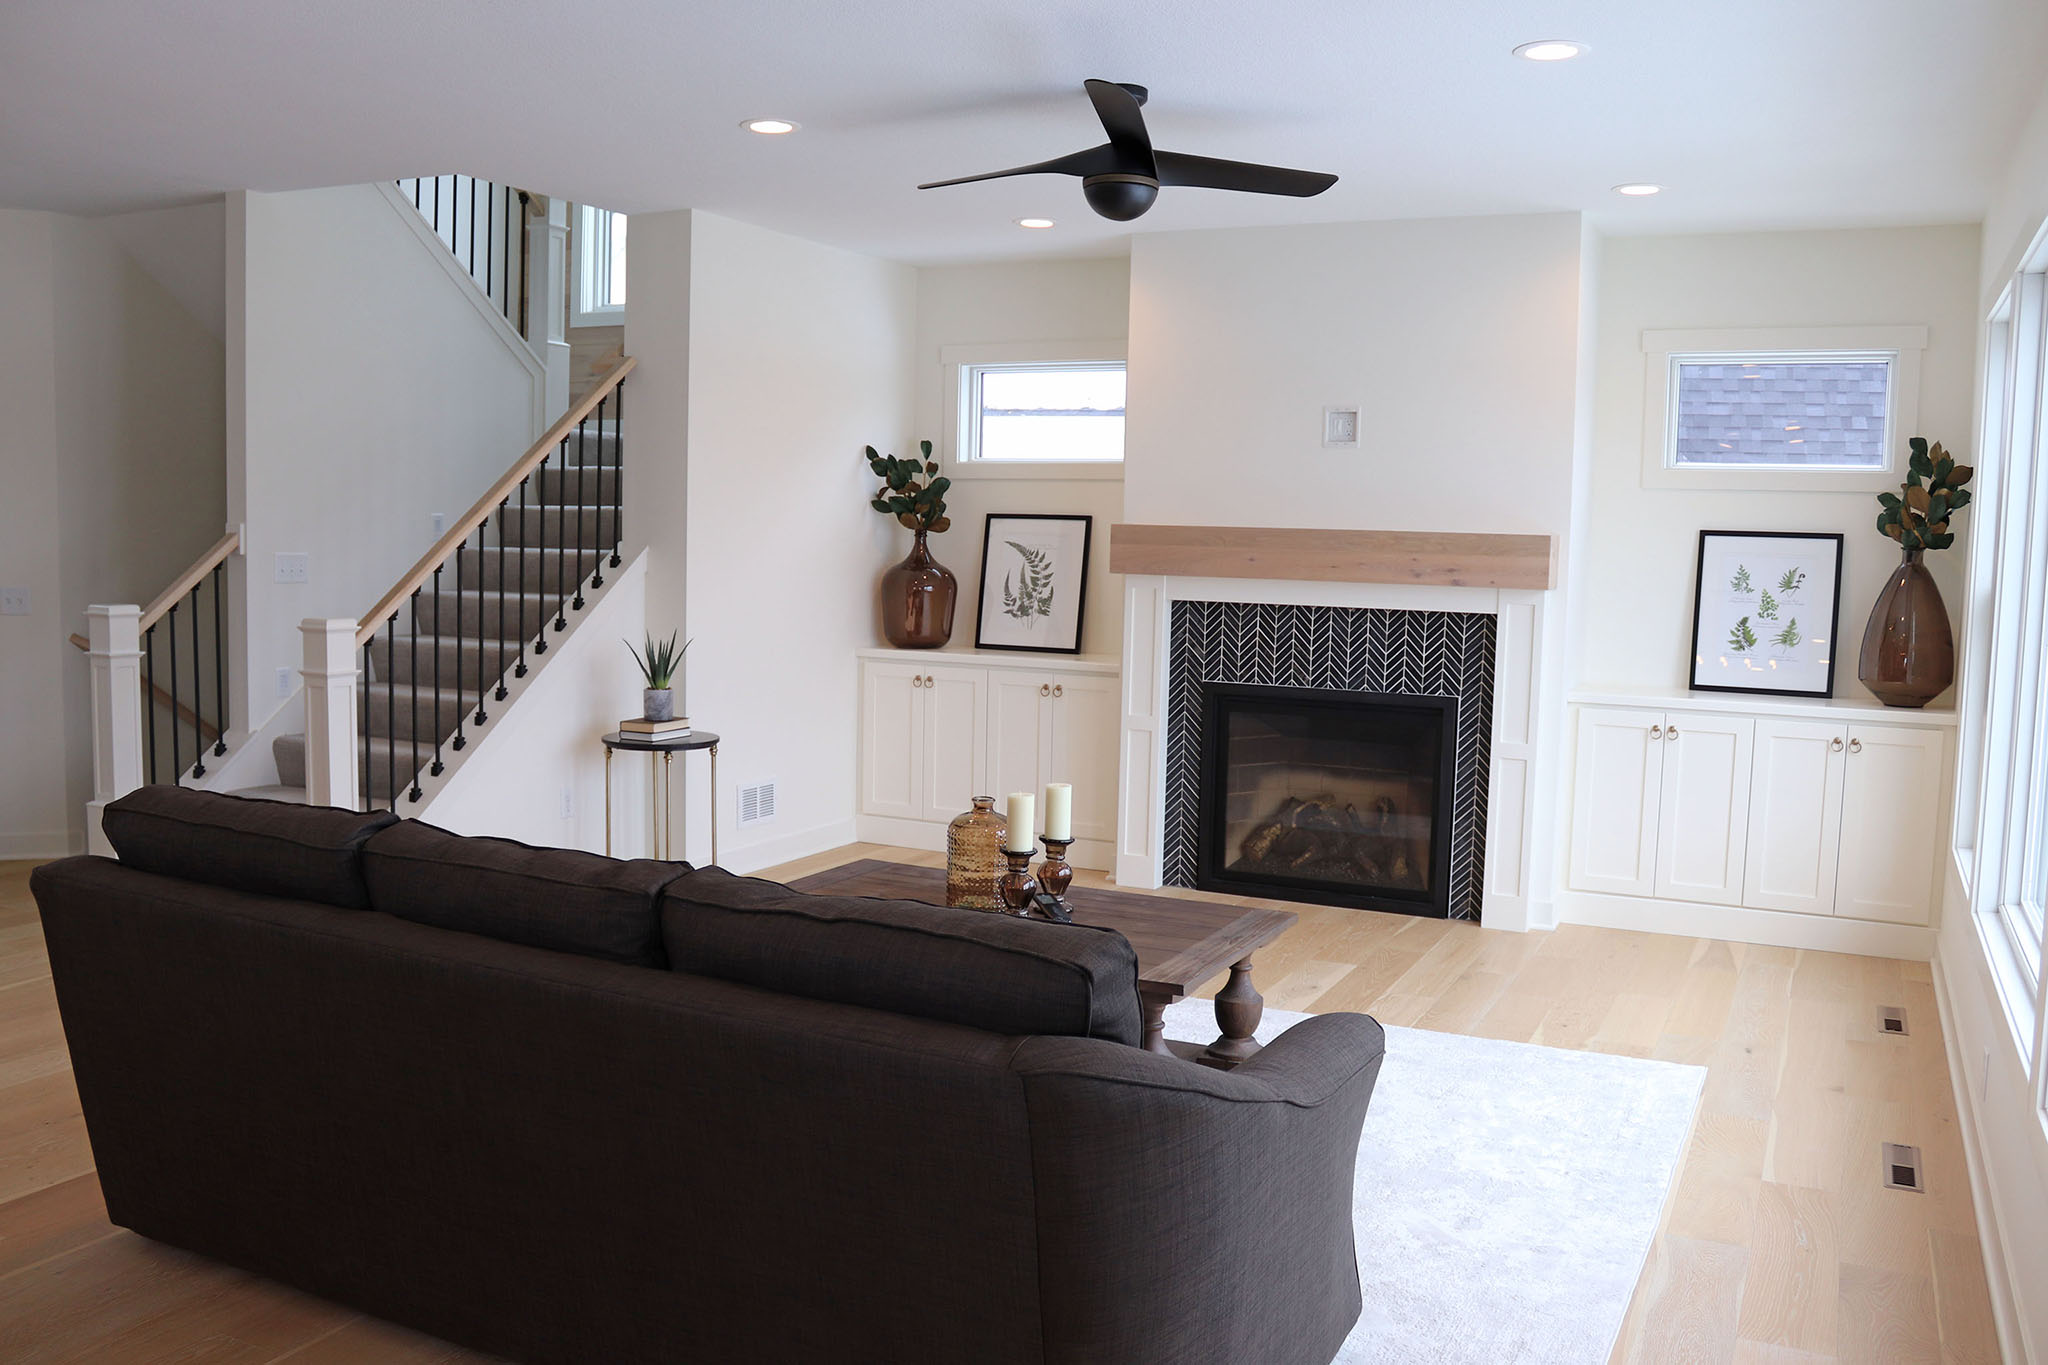 Contemporary great room with tile surround fireplace, custom cabinets, transom windows and metal baluster railing